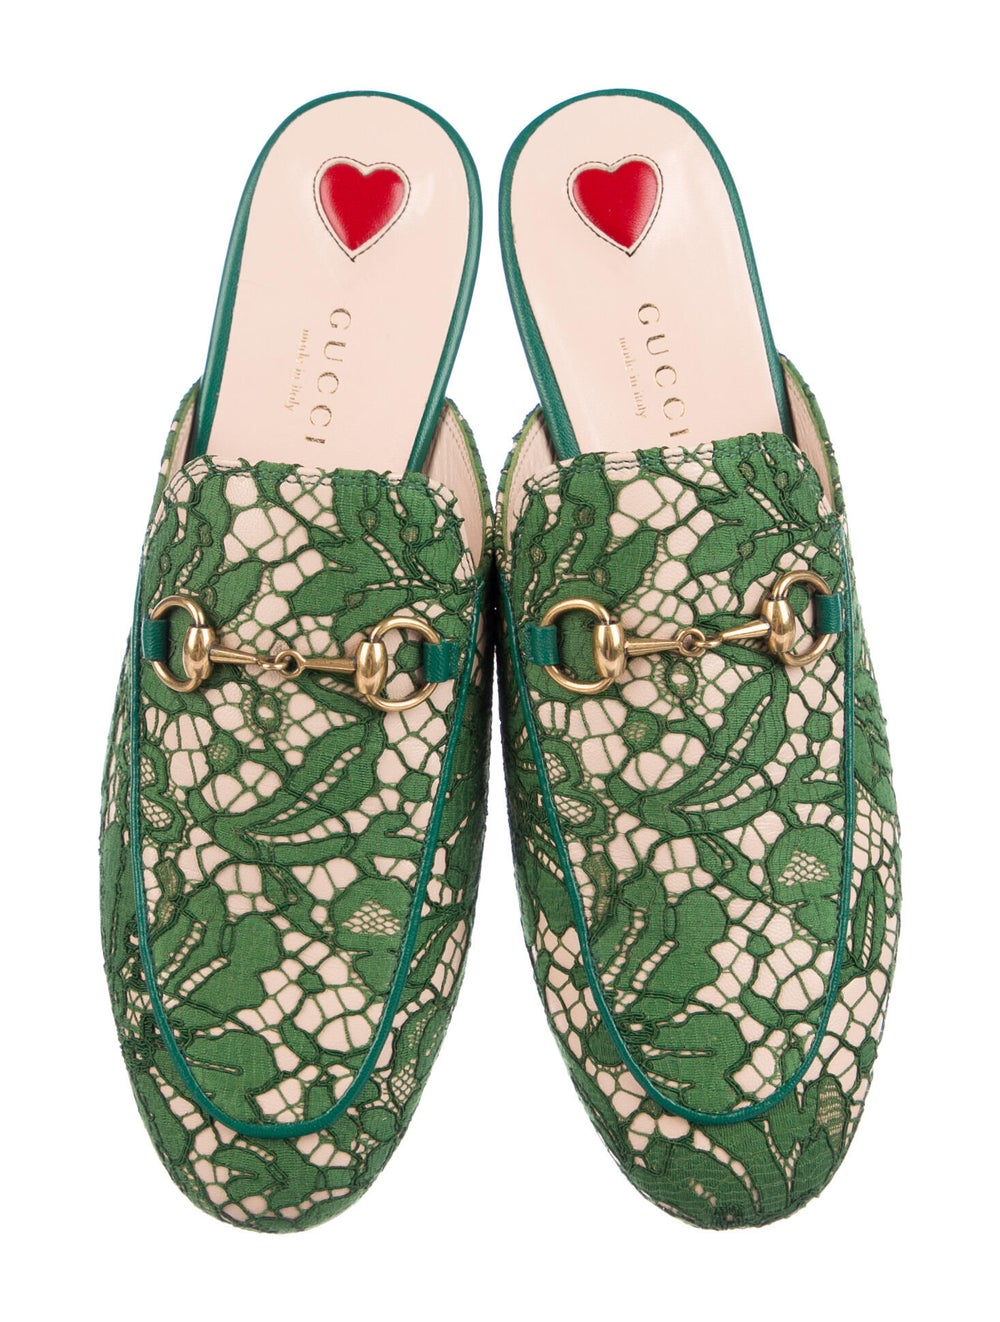 Gucci Princetown Horsebit Accent Mules Green - image 3